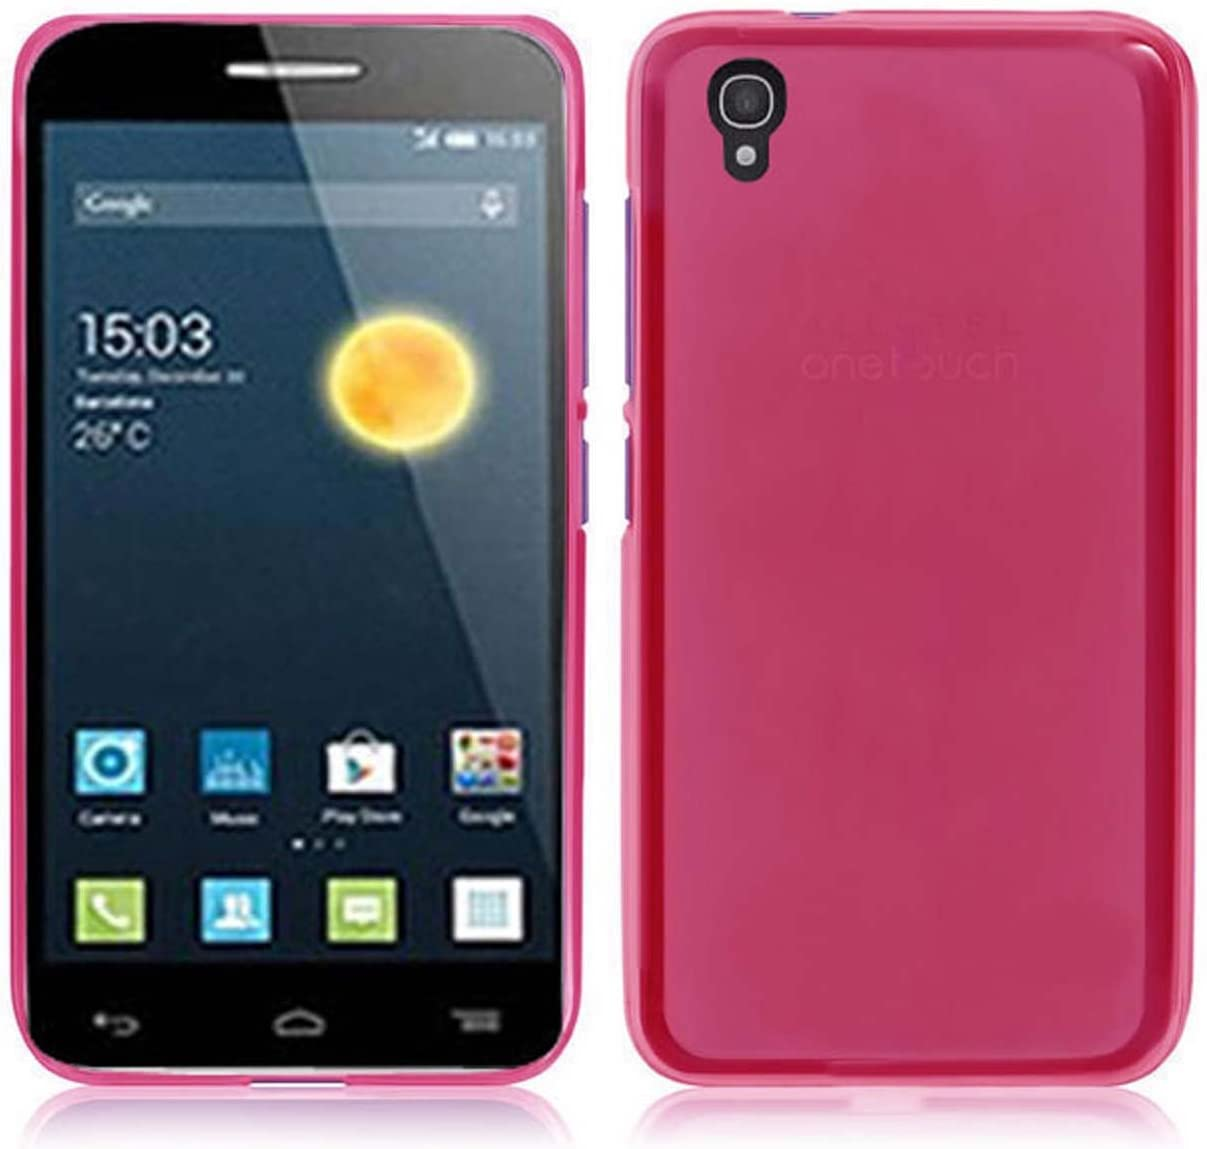 Funda Idol 3 4.7, Lincivius, Carcasa Alcatel Idol 3 4.7 Funda ...